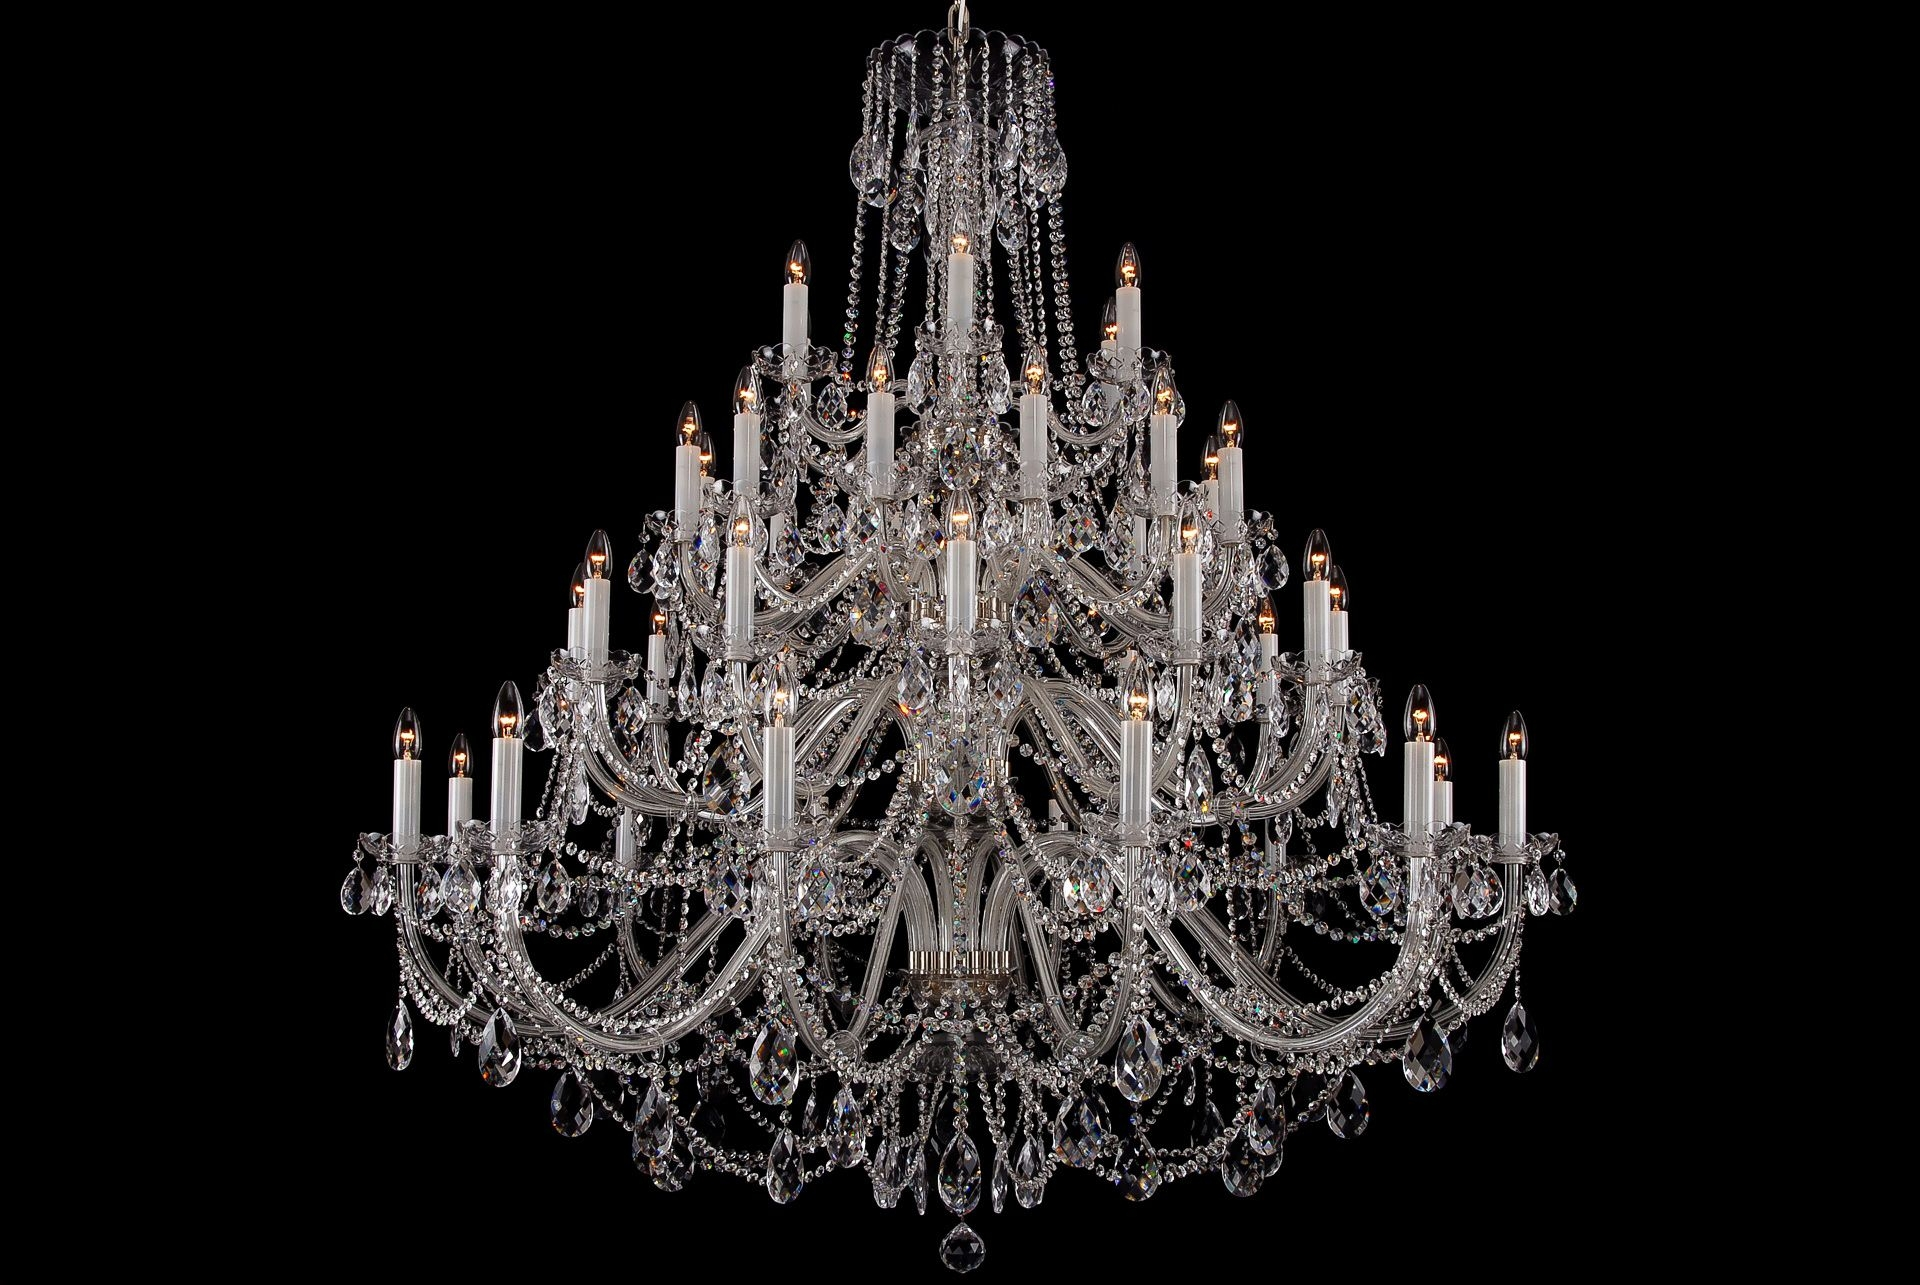 The Largest Clear Crystal Chandelier With Silver Coloured Metal Intended For Huge Crystal Chandeliers (Image 15 of 15)